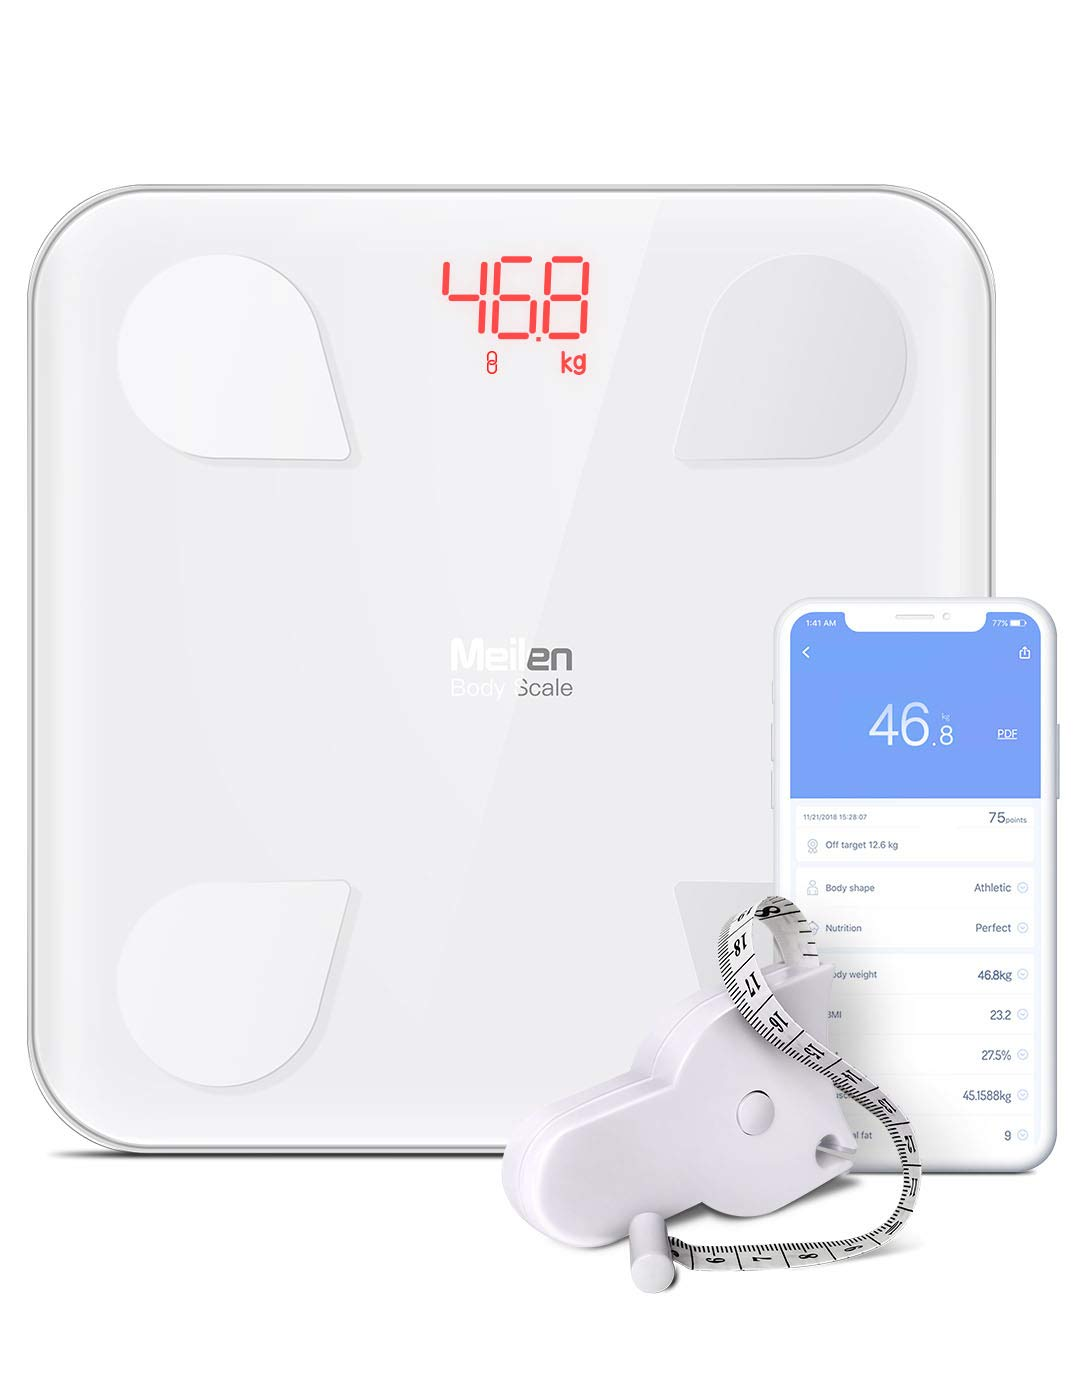 Bluetooth Body Fat Scale - Smart Digital Weight Scale with Free iOS, Android APP, Unlimited Users, Auto Recognition Body Composition Analyzer for Fat, BMI, BMR, Muscle Mass.lbs/kg (White)